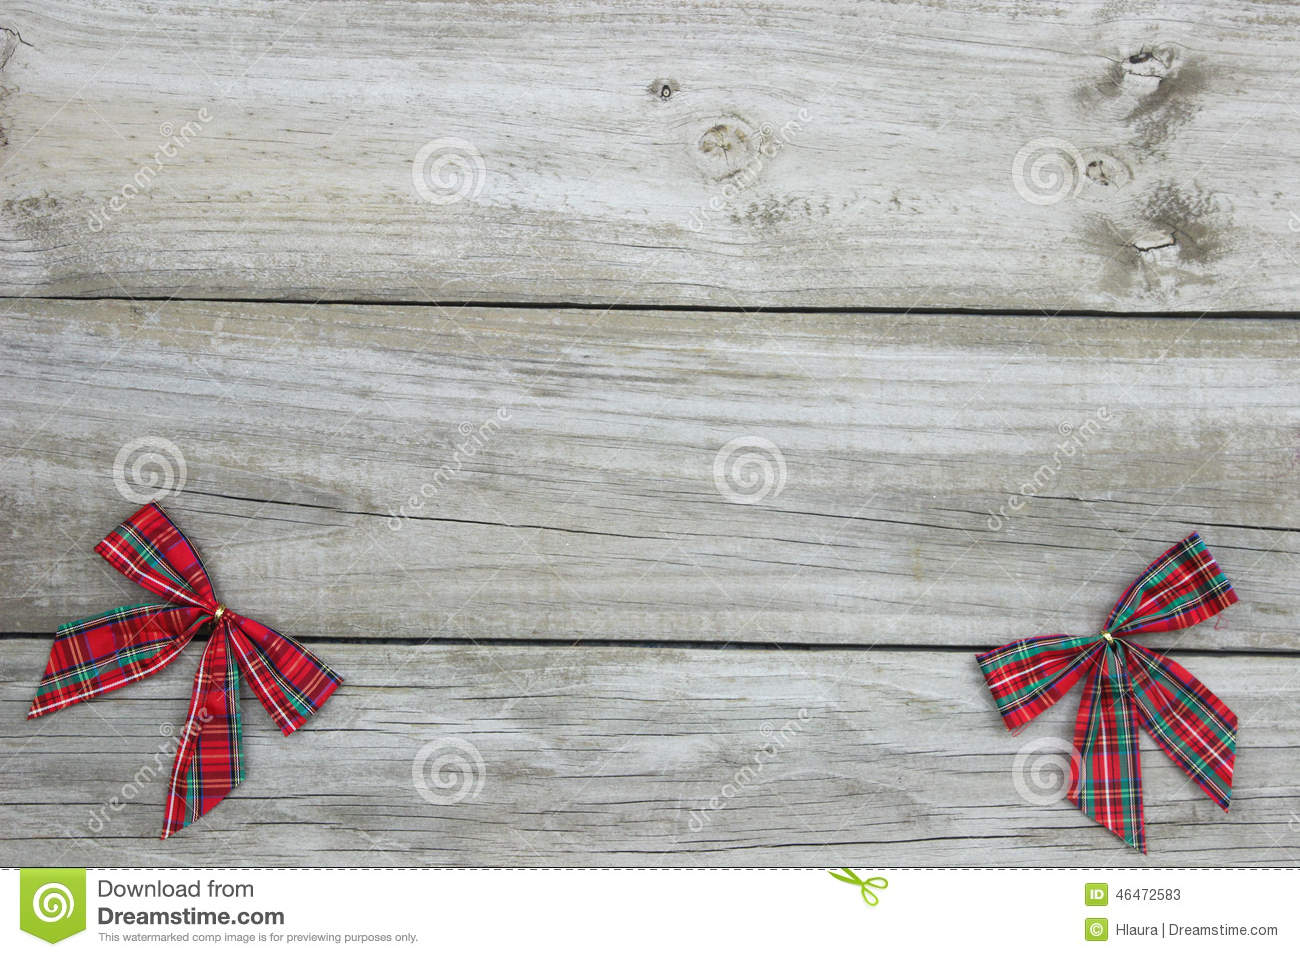 Plaid Christmas Bows Border With Rustic Wood Background